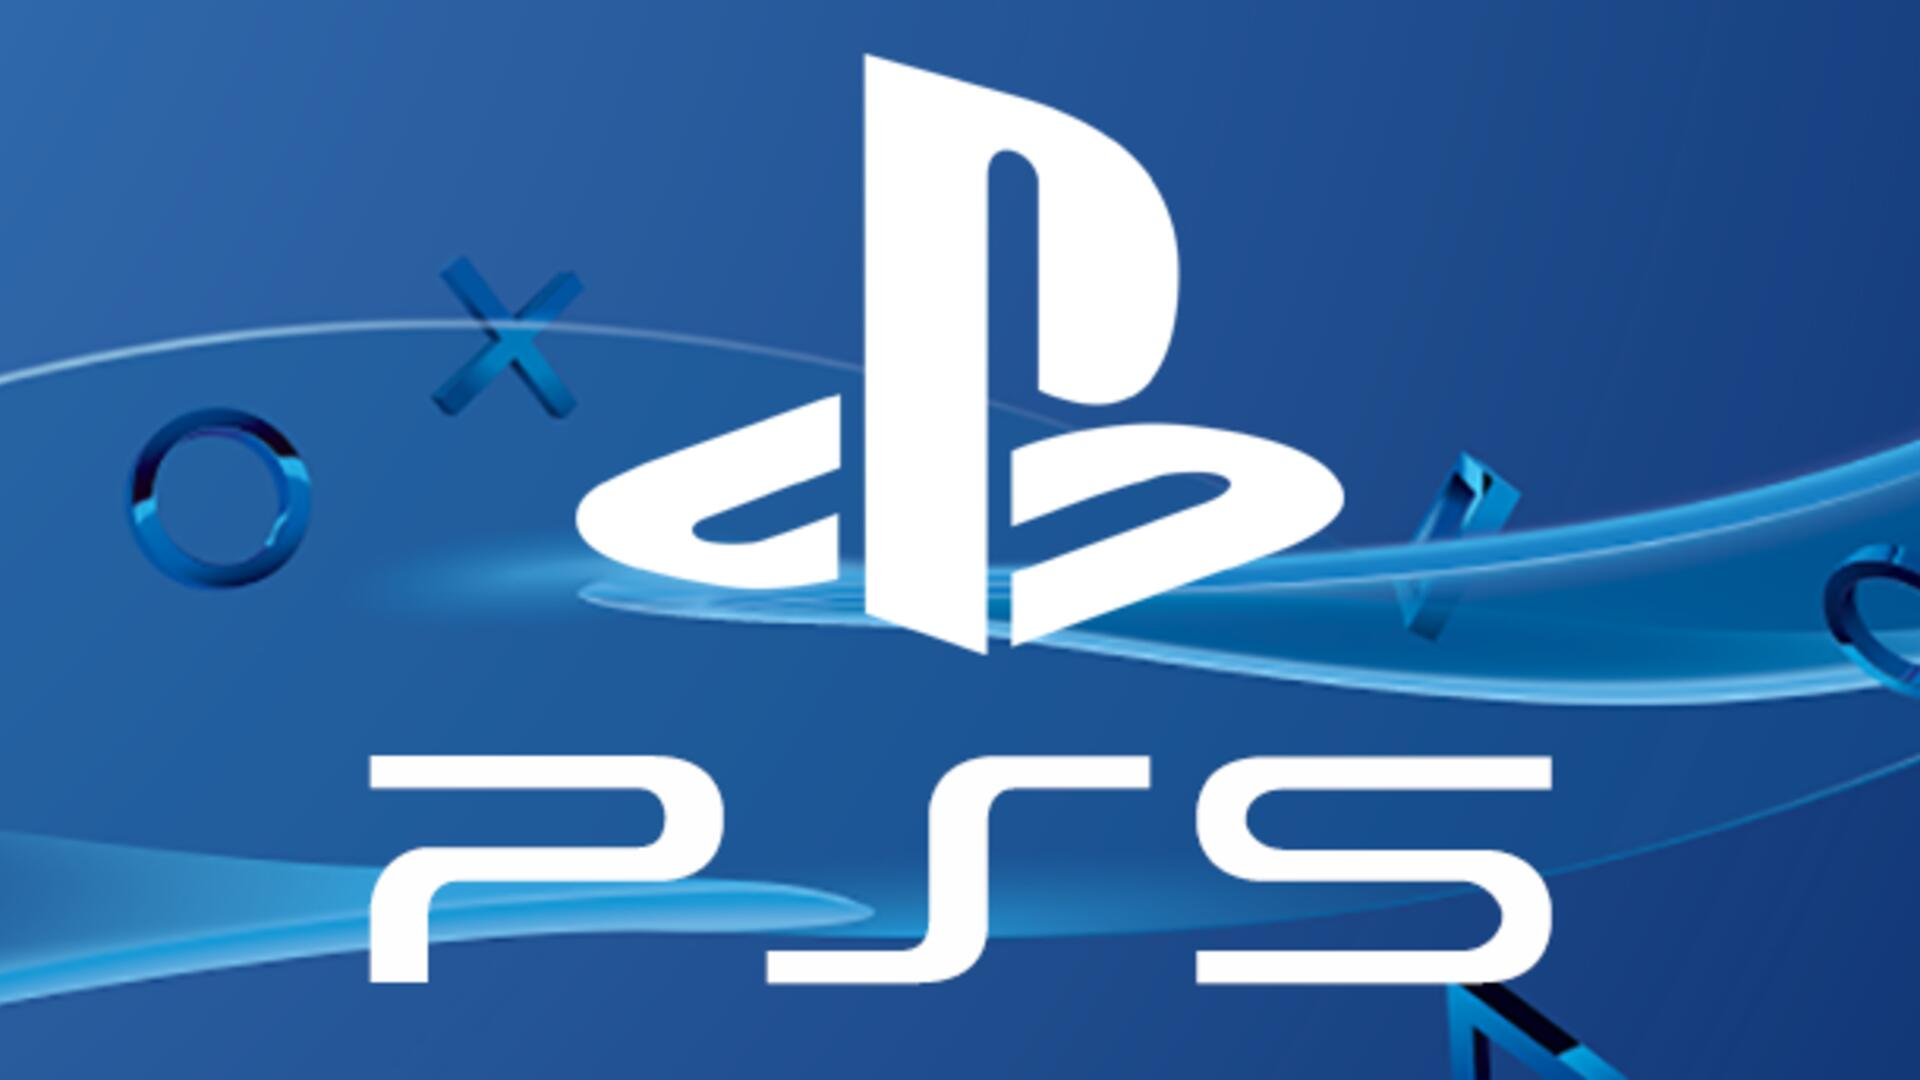 PS4 is Entering 'Final Phase' of its Life Cycle, Says Sony Interactive Entertainment CEO